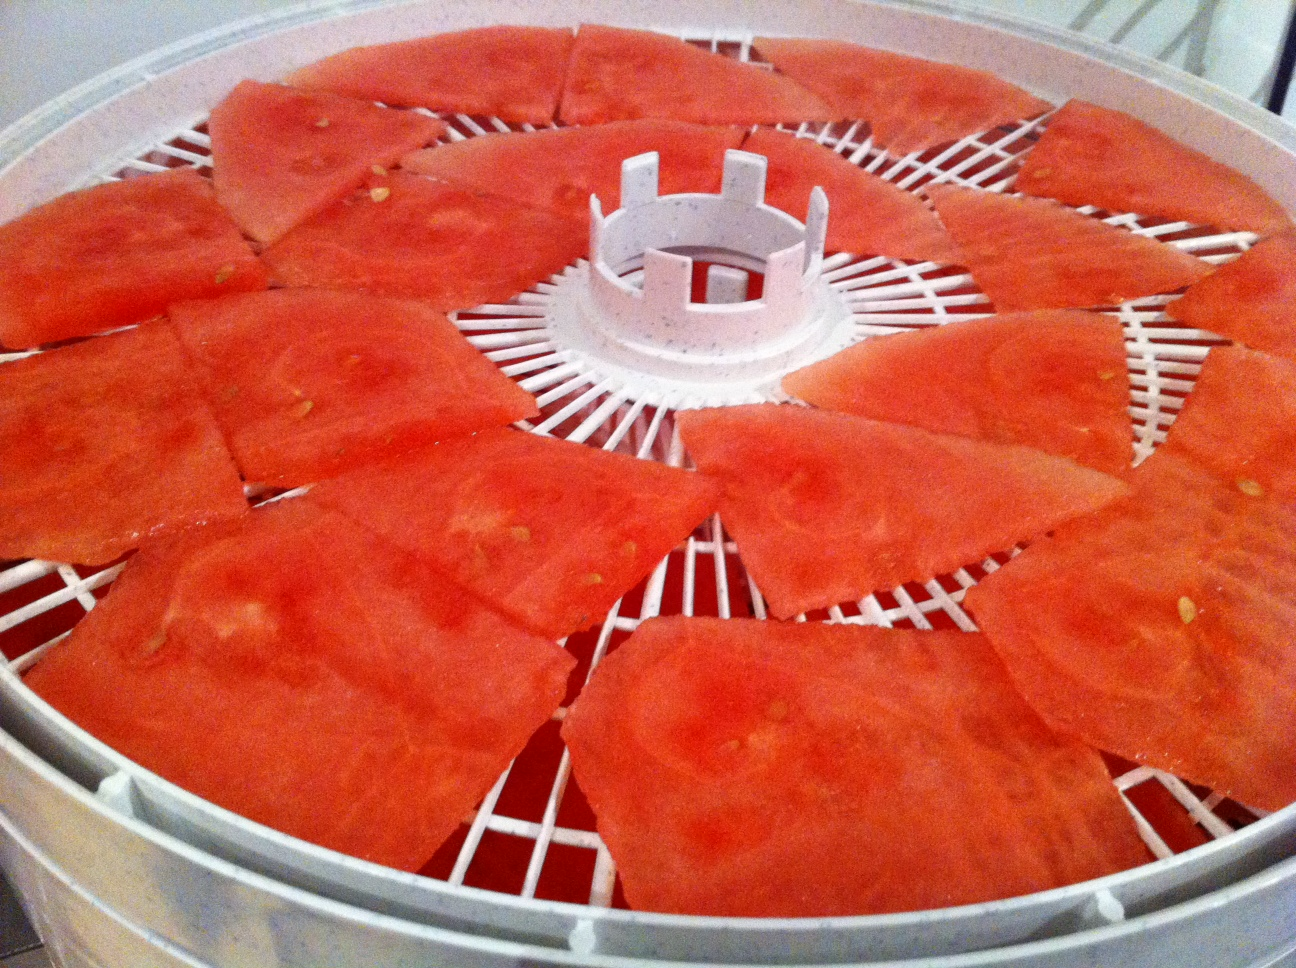 Watermelon sliced thin in the dehydrator (before dehydrating)